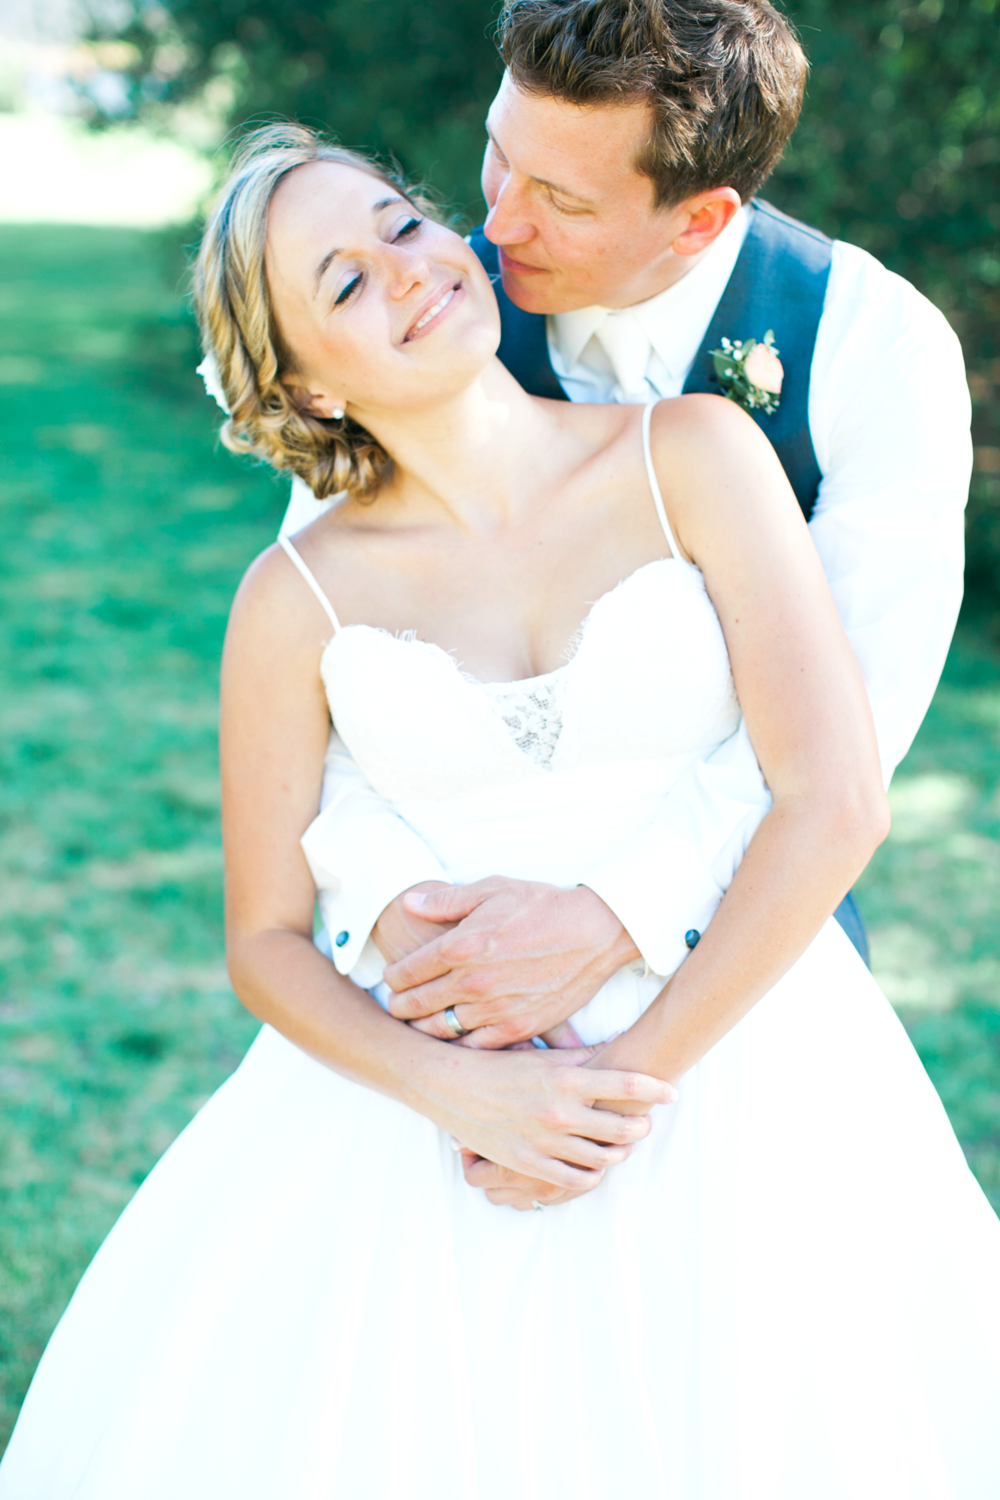 the_white_wedding_stagecoach_inn_california_im_kristen_photography (83 of 188).jpg